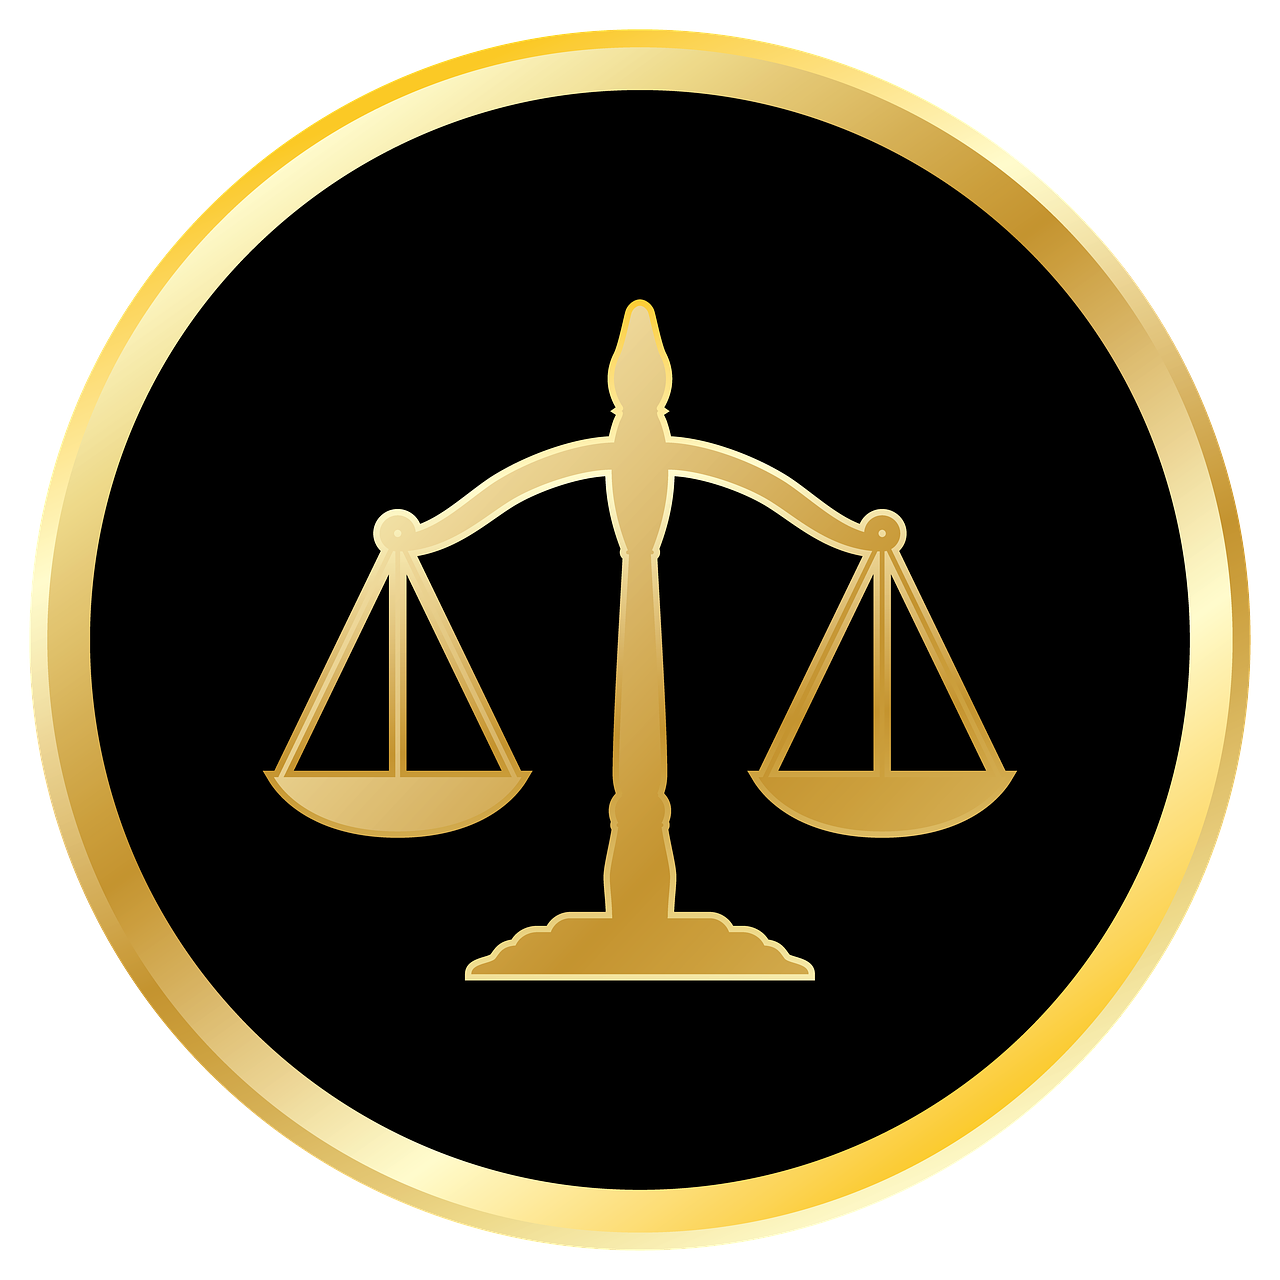 scale of justice One inch lapel pin featuring the scales of justice gold plated with single post back and butterfly clasp great gift for anyone working in the legal profession.